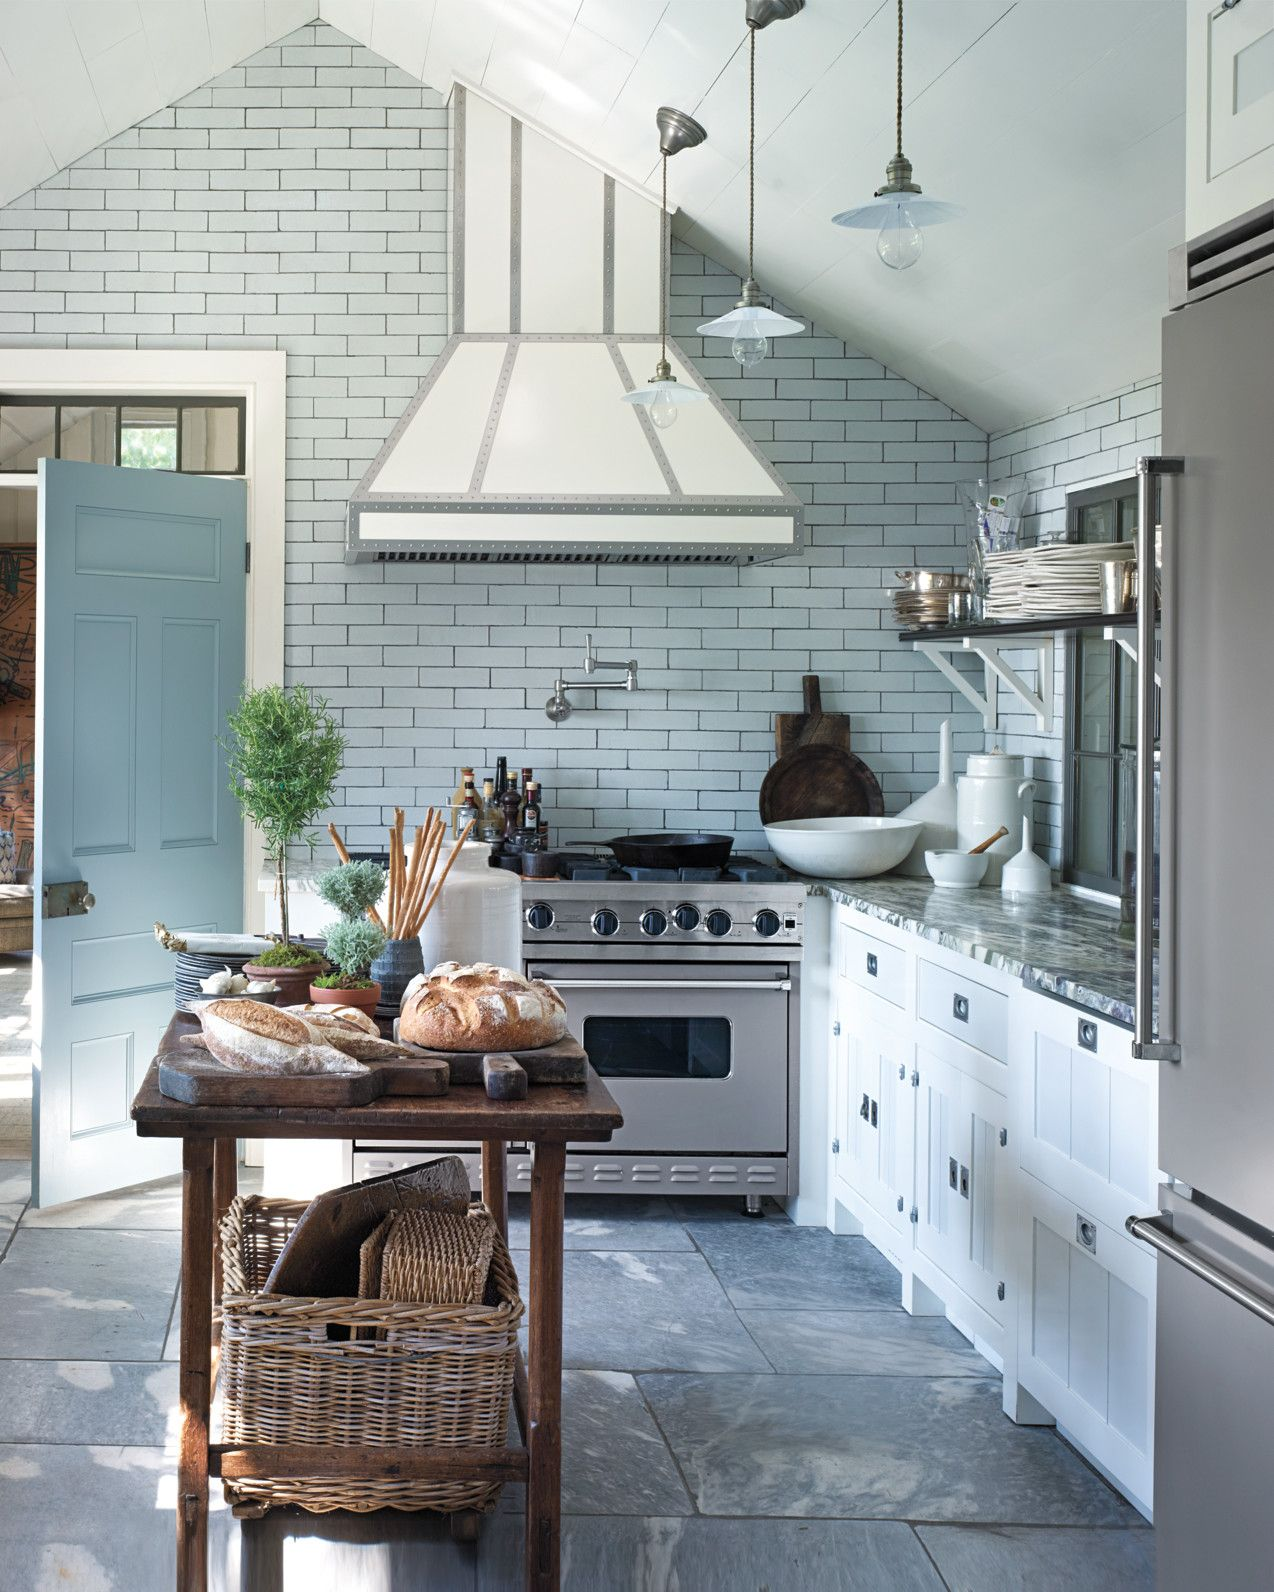 A Rustic Revelation: 8 Creative Country Kitchen Ideas | Urban ...